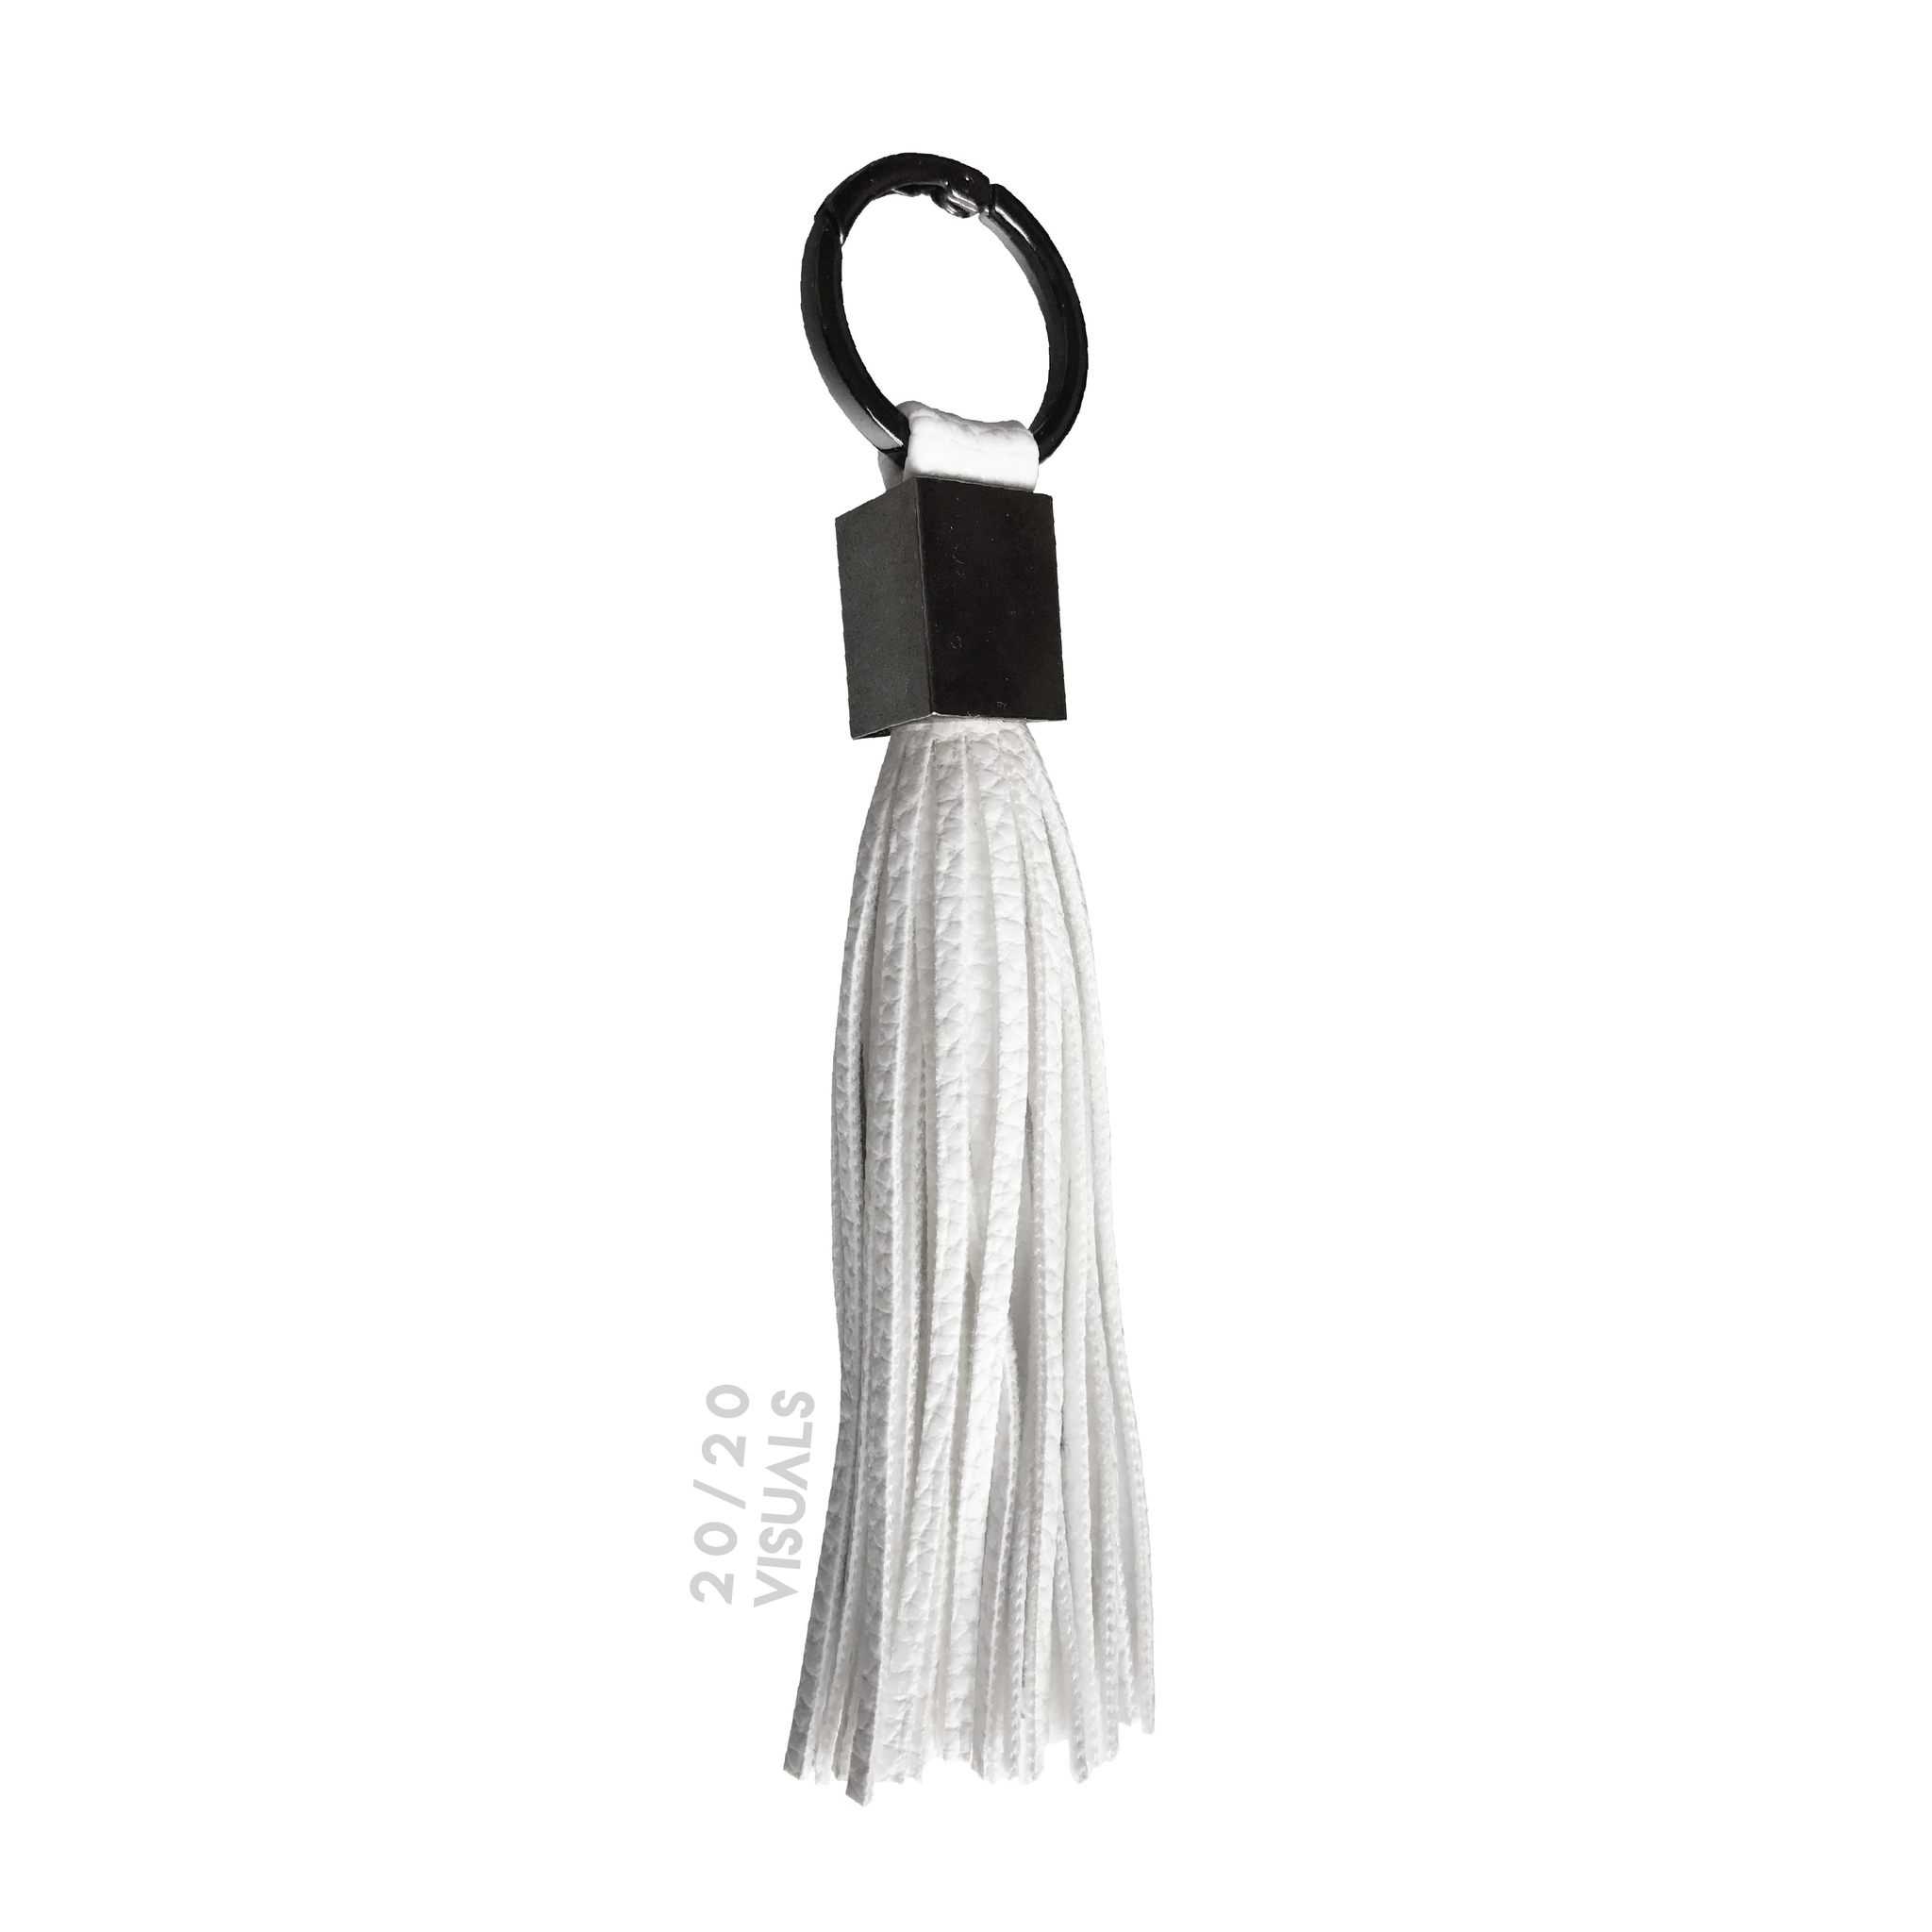 Tassel USB Charging Cable (White)